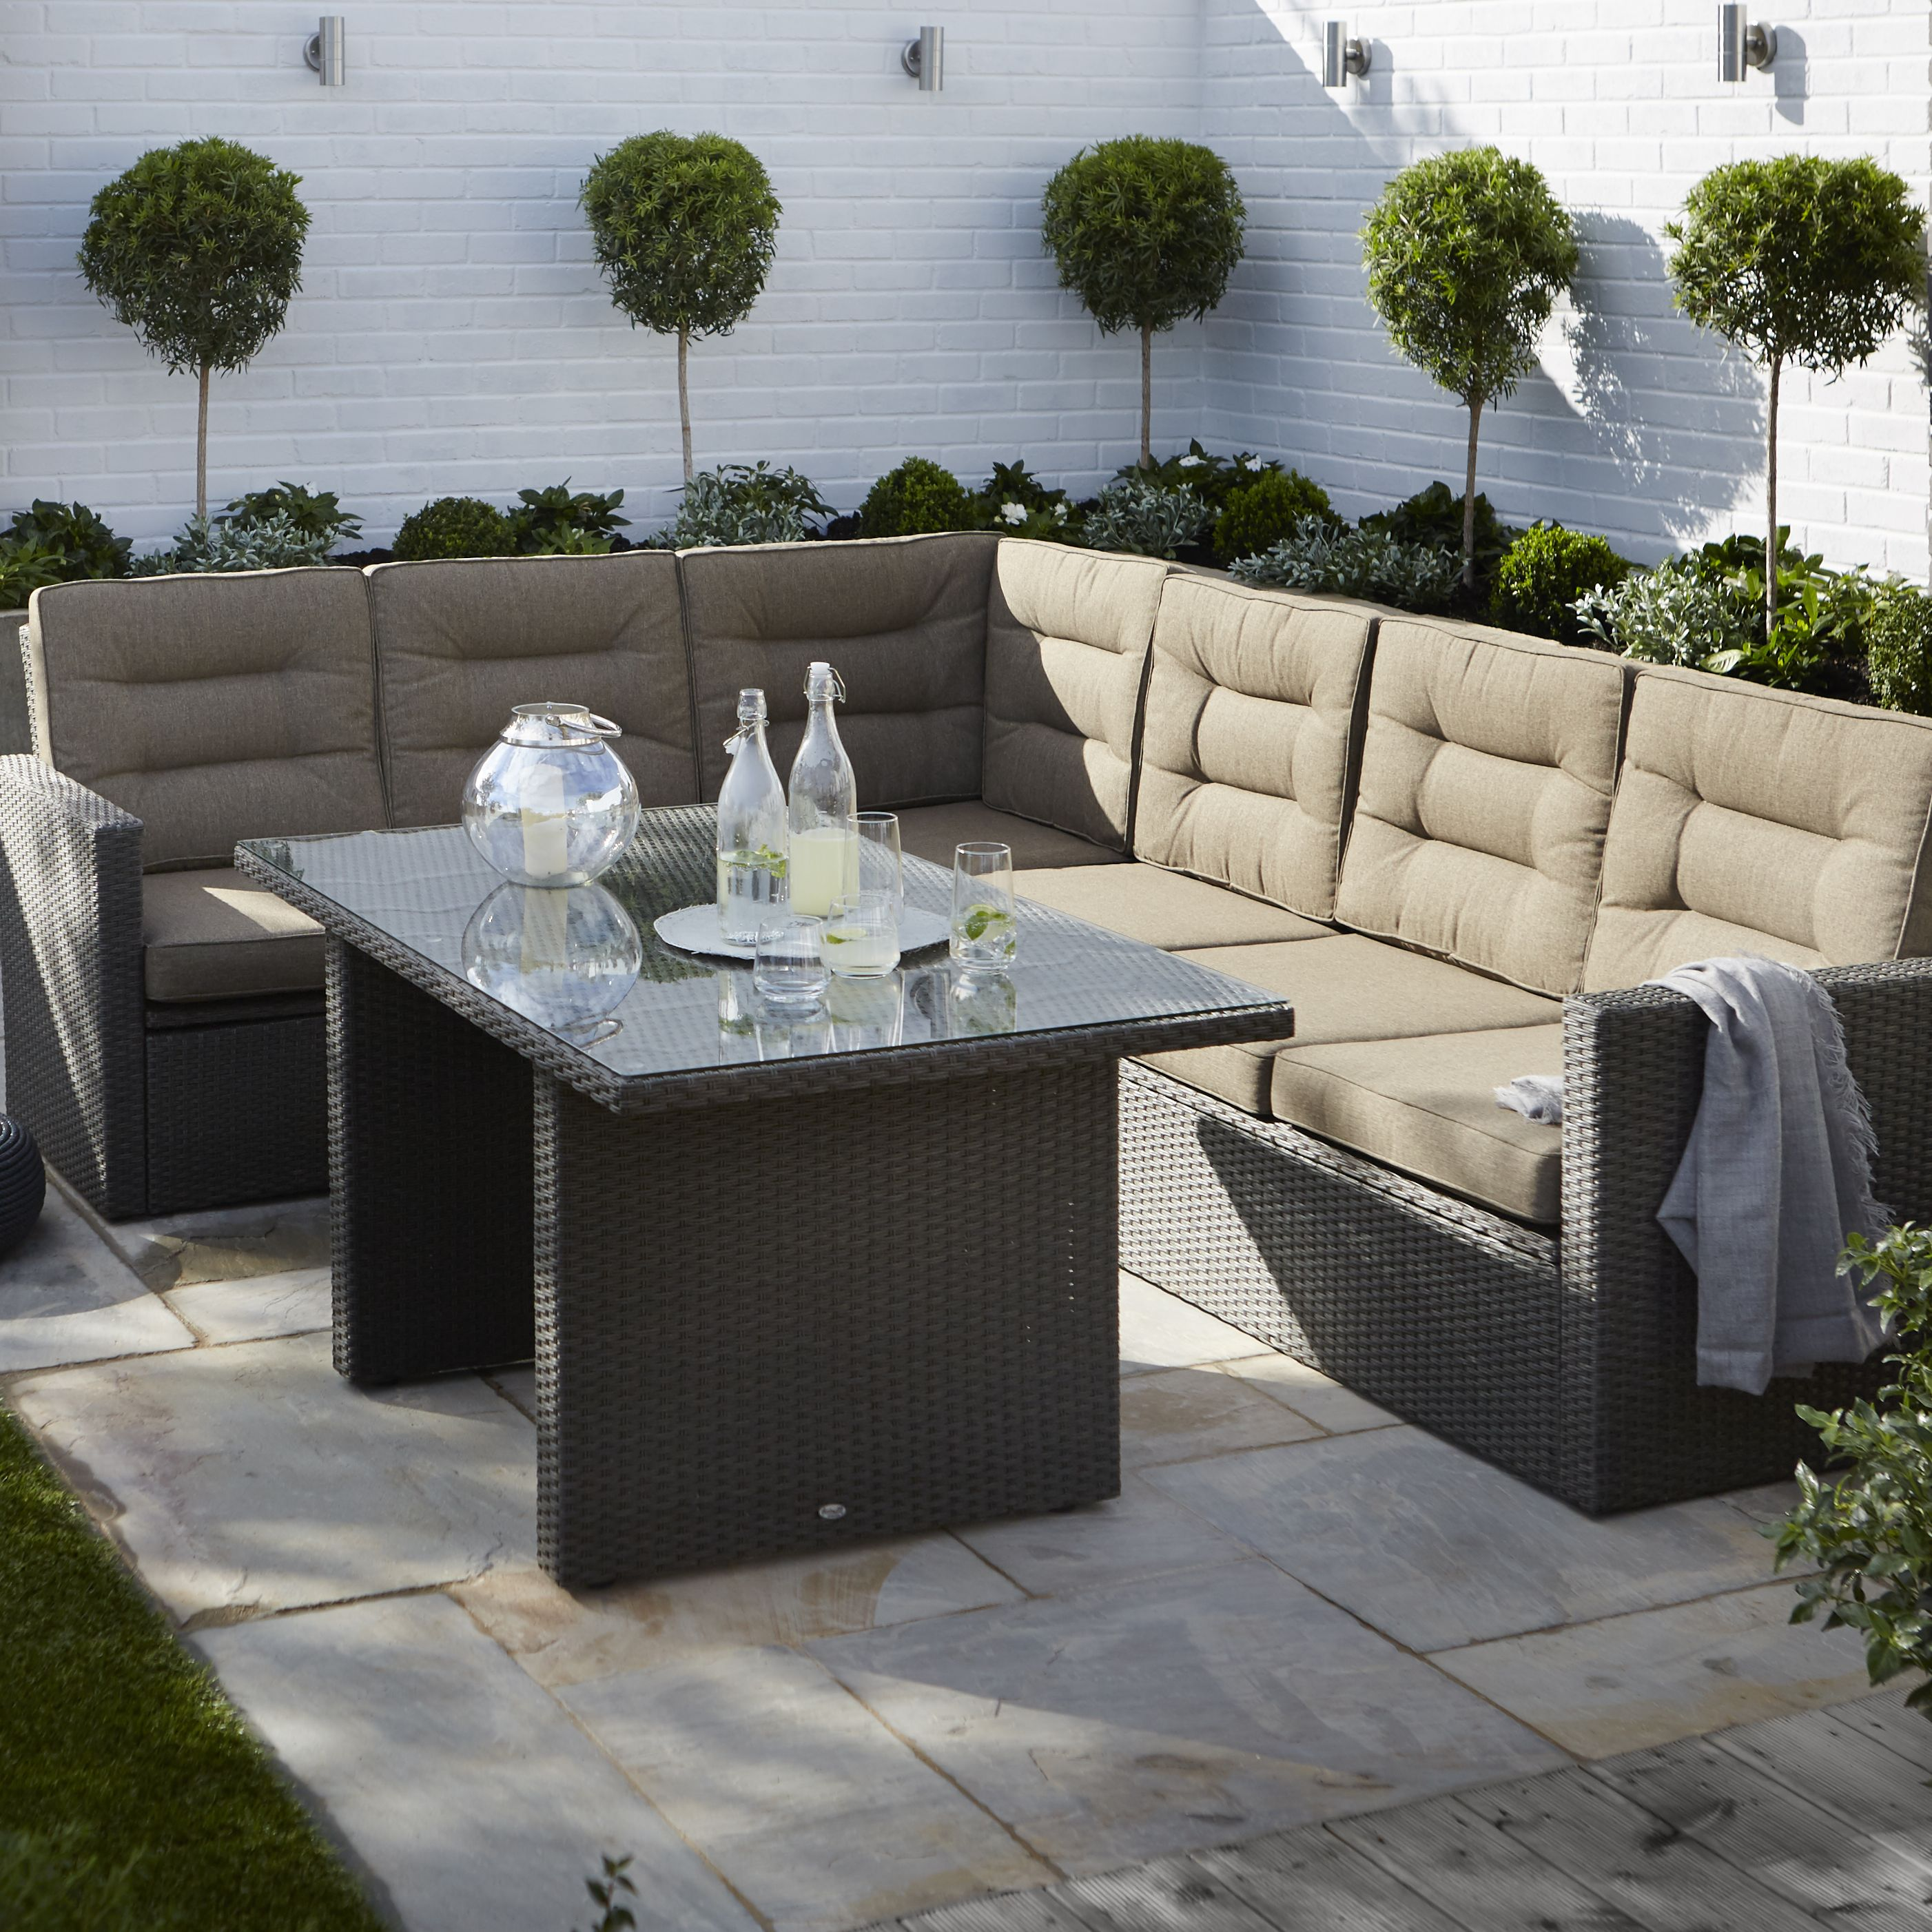 Garden Furniture Pictures garden furniture